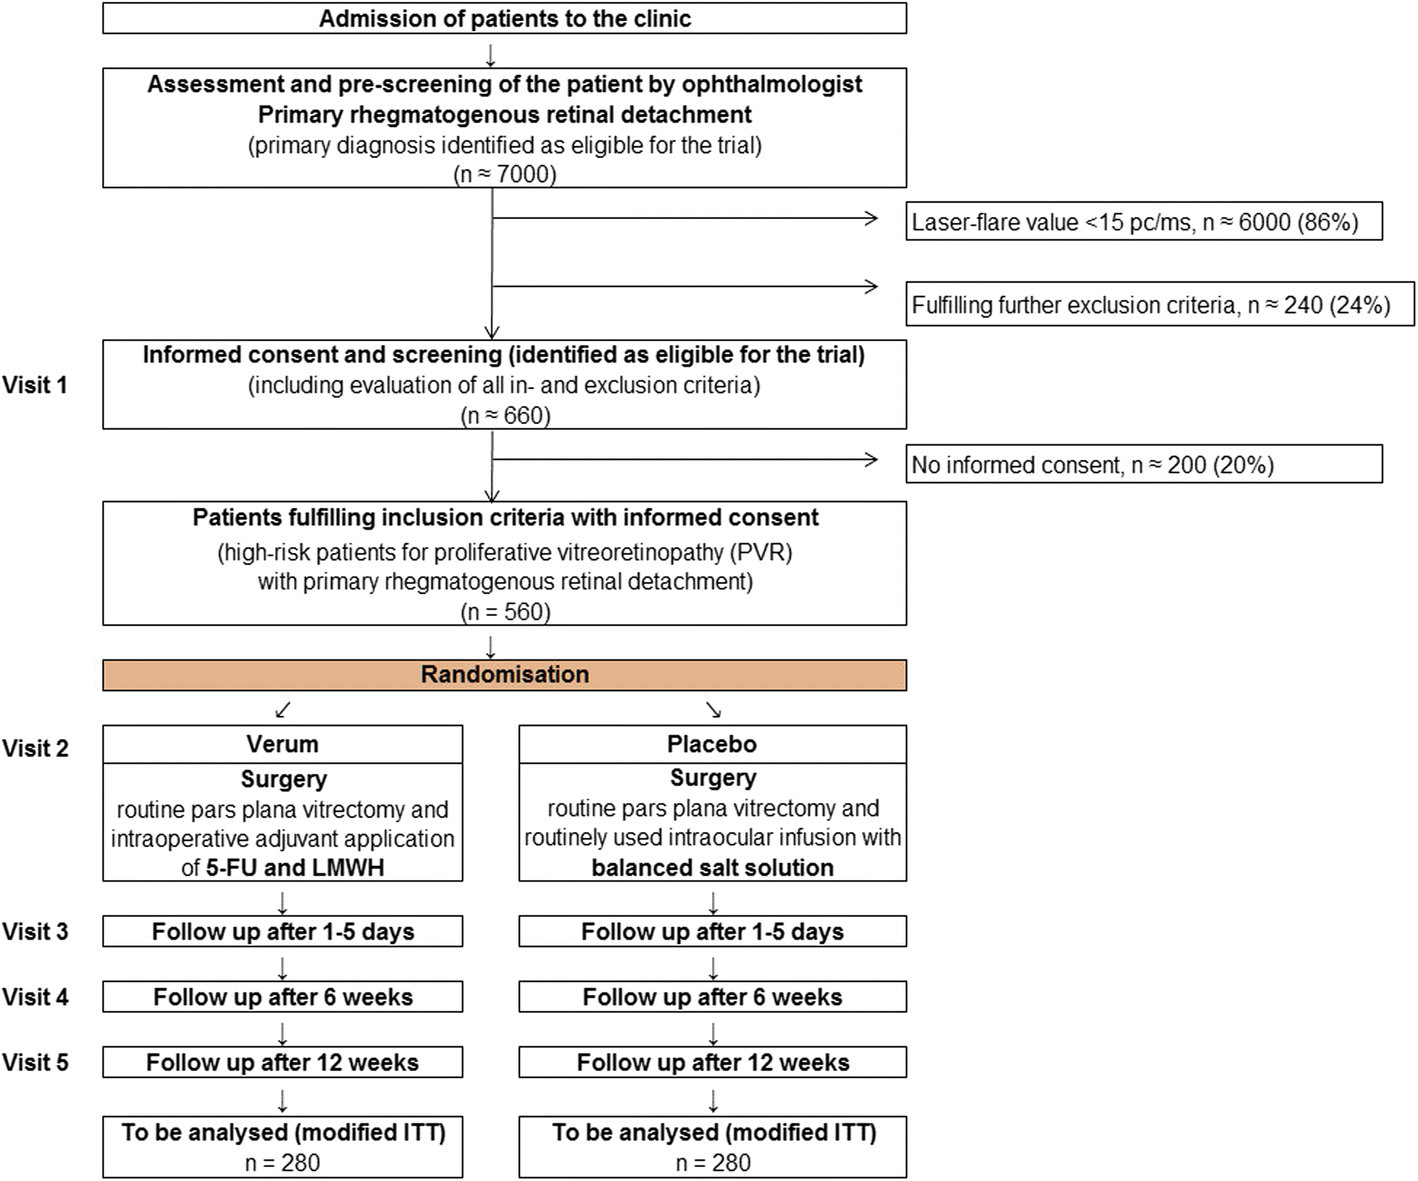 Prophylactic intravitreal 5-fluorouracil and heparin to prevent